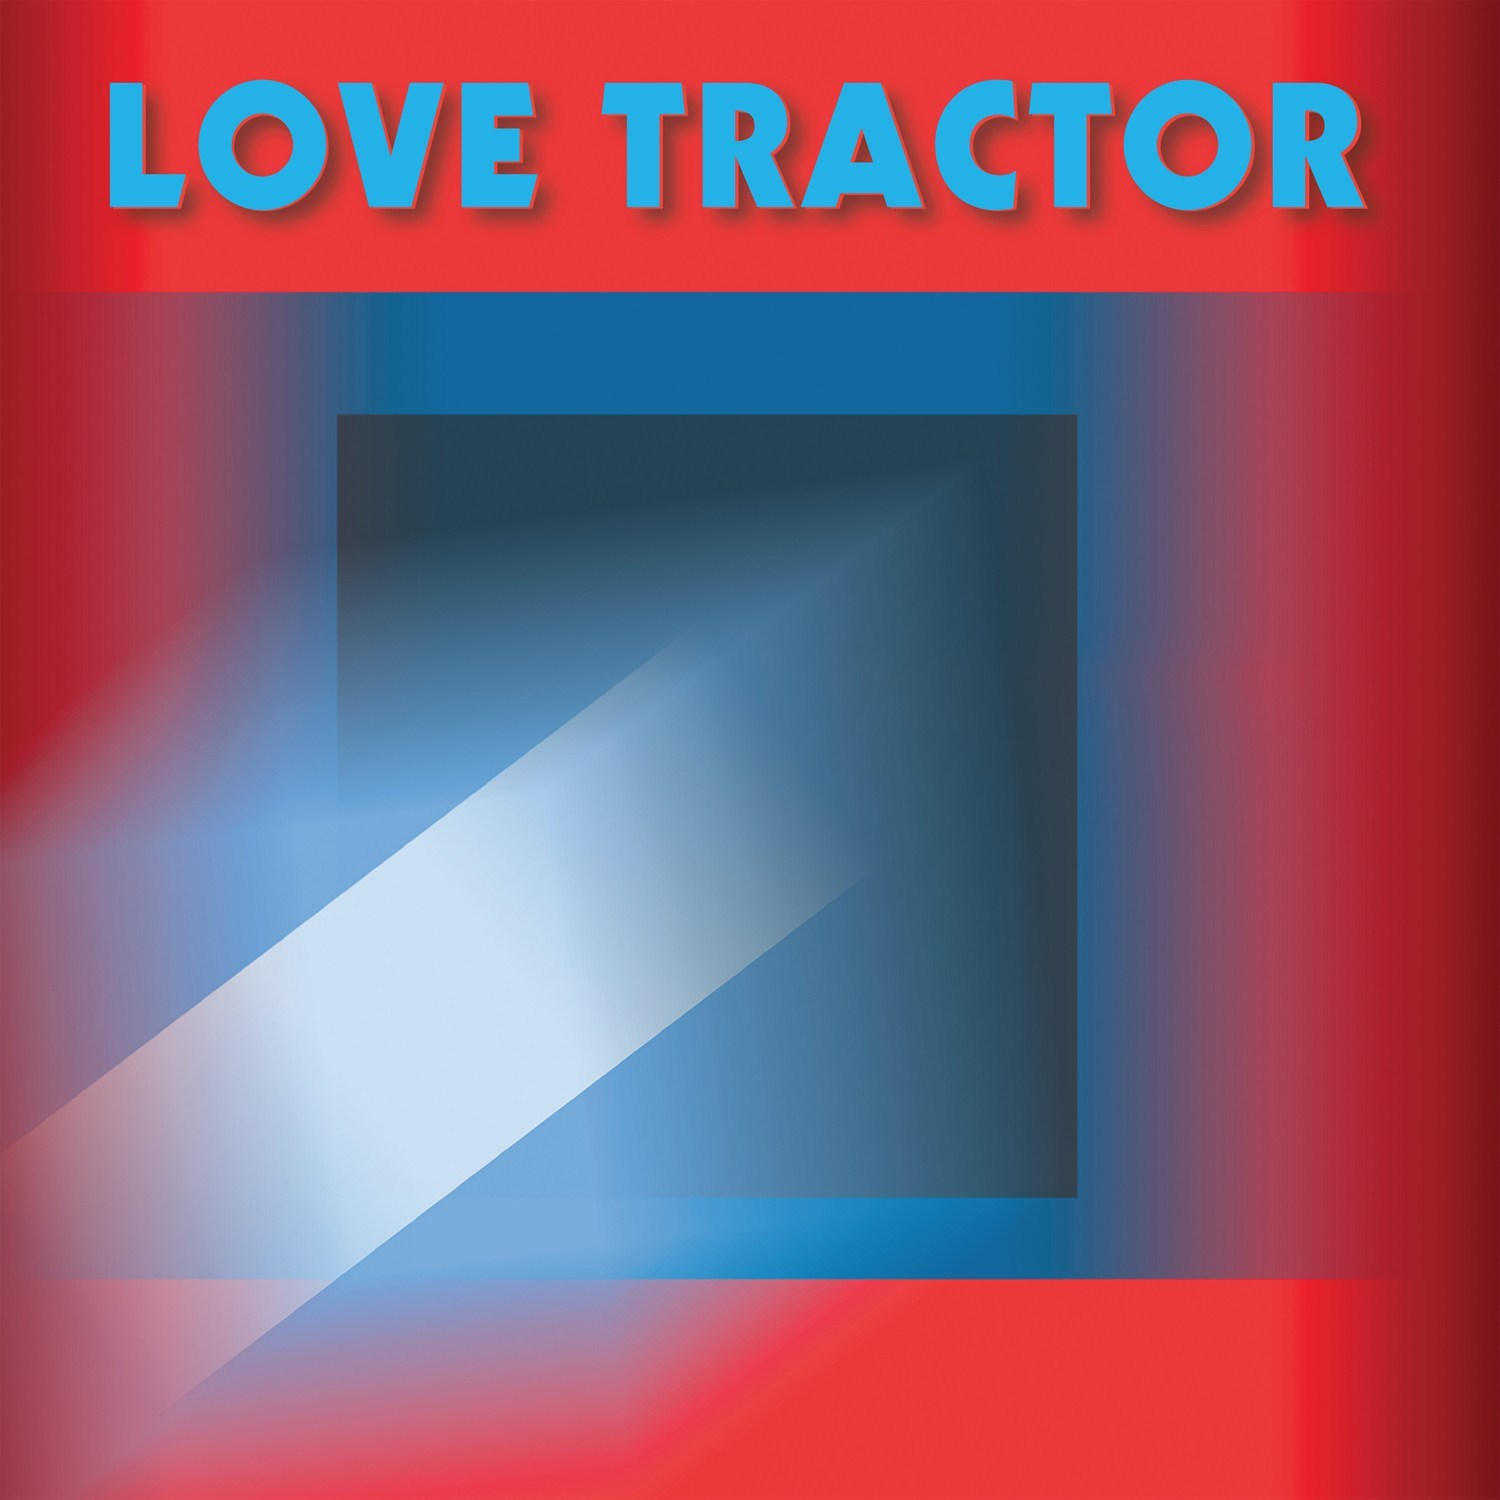 Delightfully Out On A Limb of Their Own – Celebrating the Newly-Remastered Sound of Love Tractor's Eponymous 1982 Debut